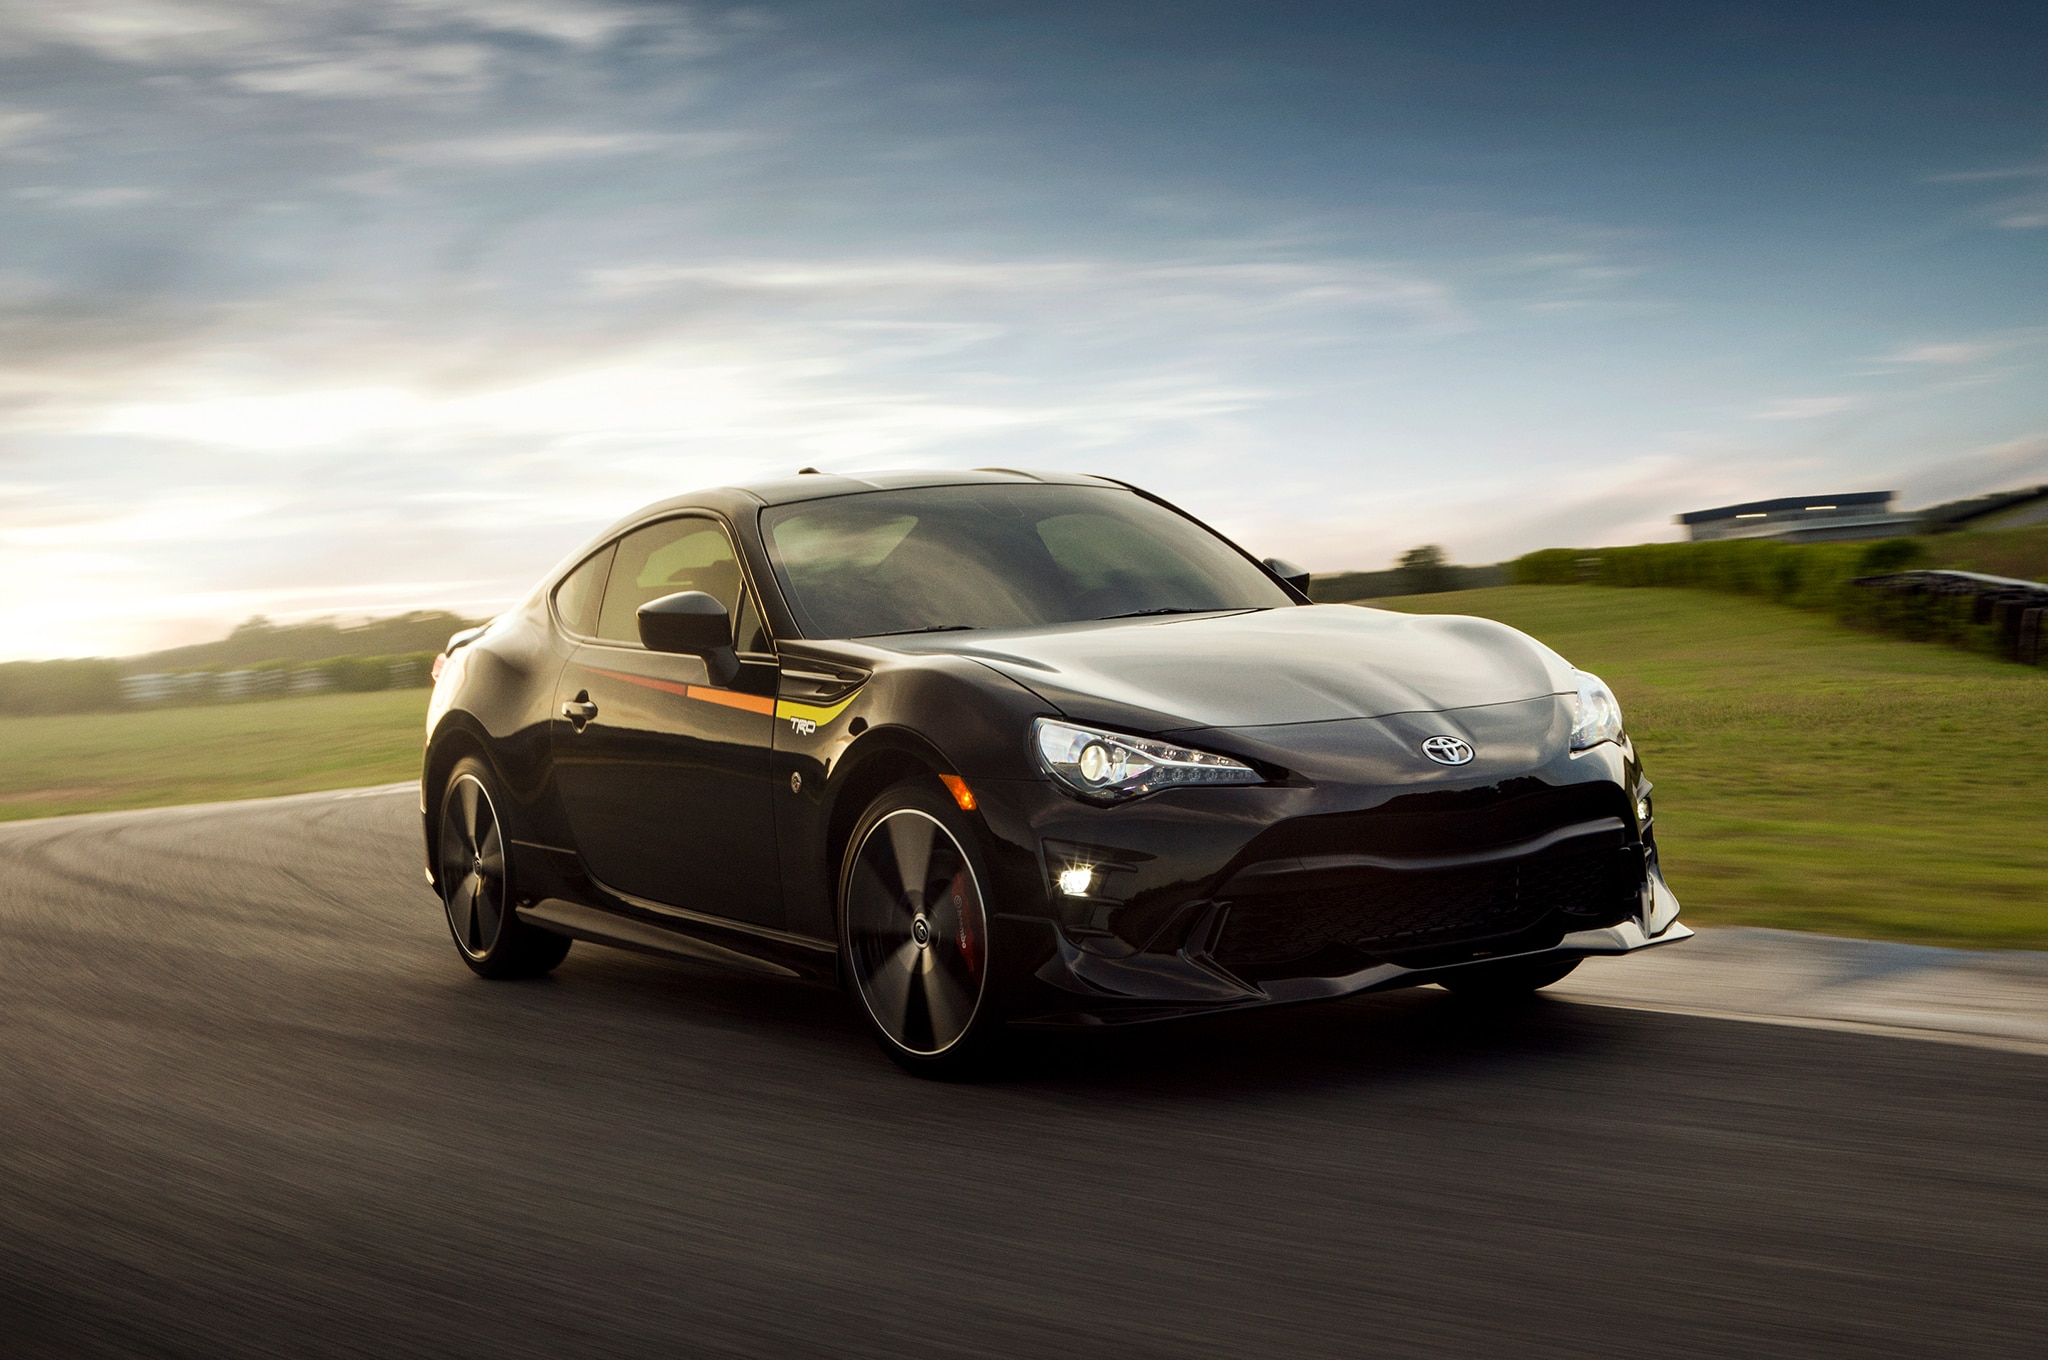 2019 Toyota 86 TRD SE Front Three Quarter In Motion 02